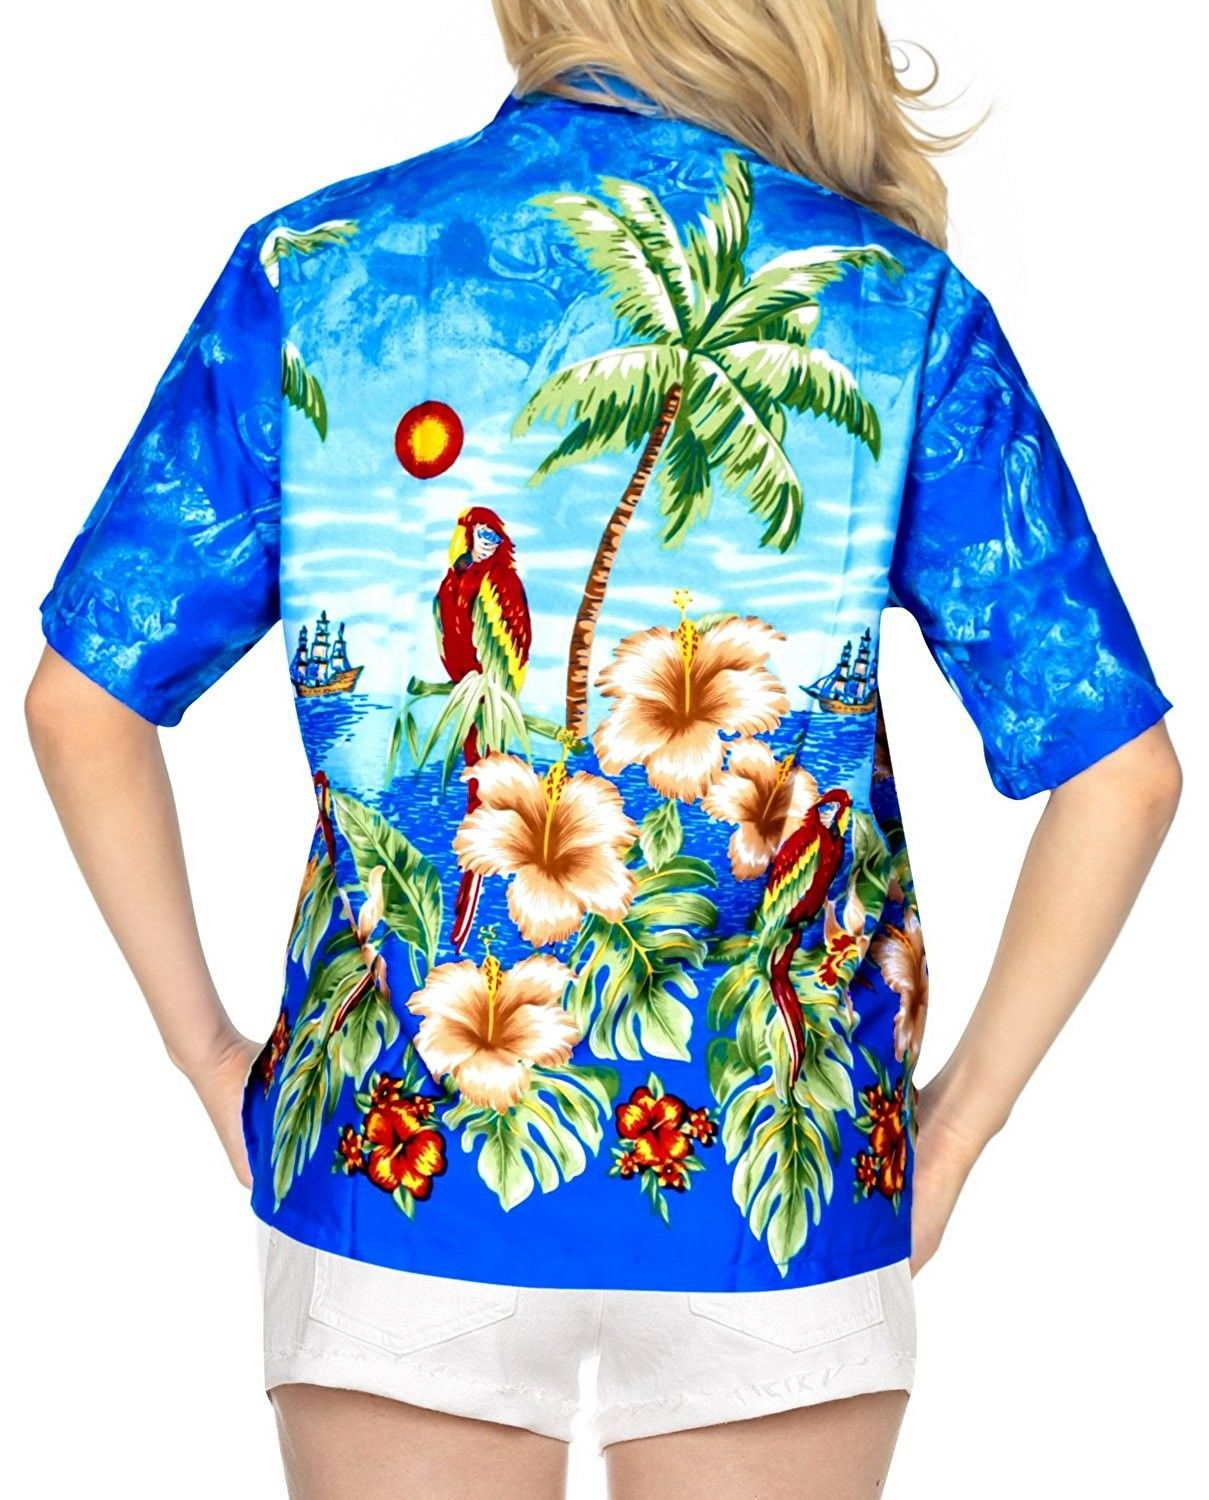 4a1ebe6427 Women Hawaiian Shirt Blouses Beach Top Tank Casual Aloha Holiday ...